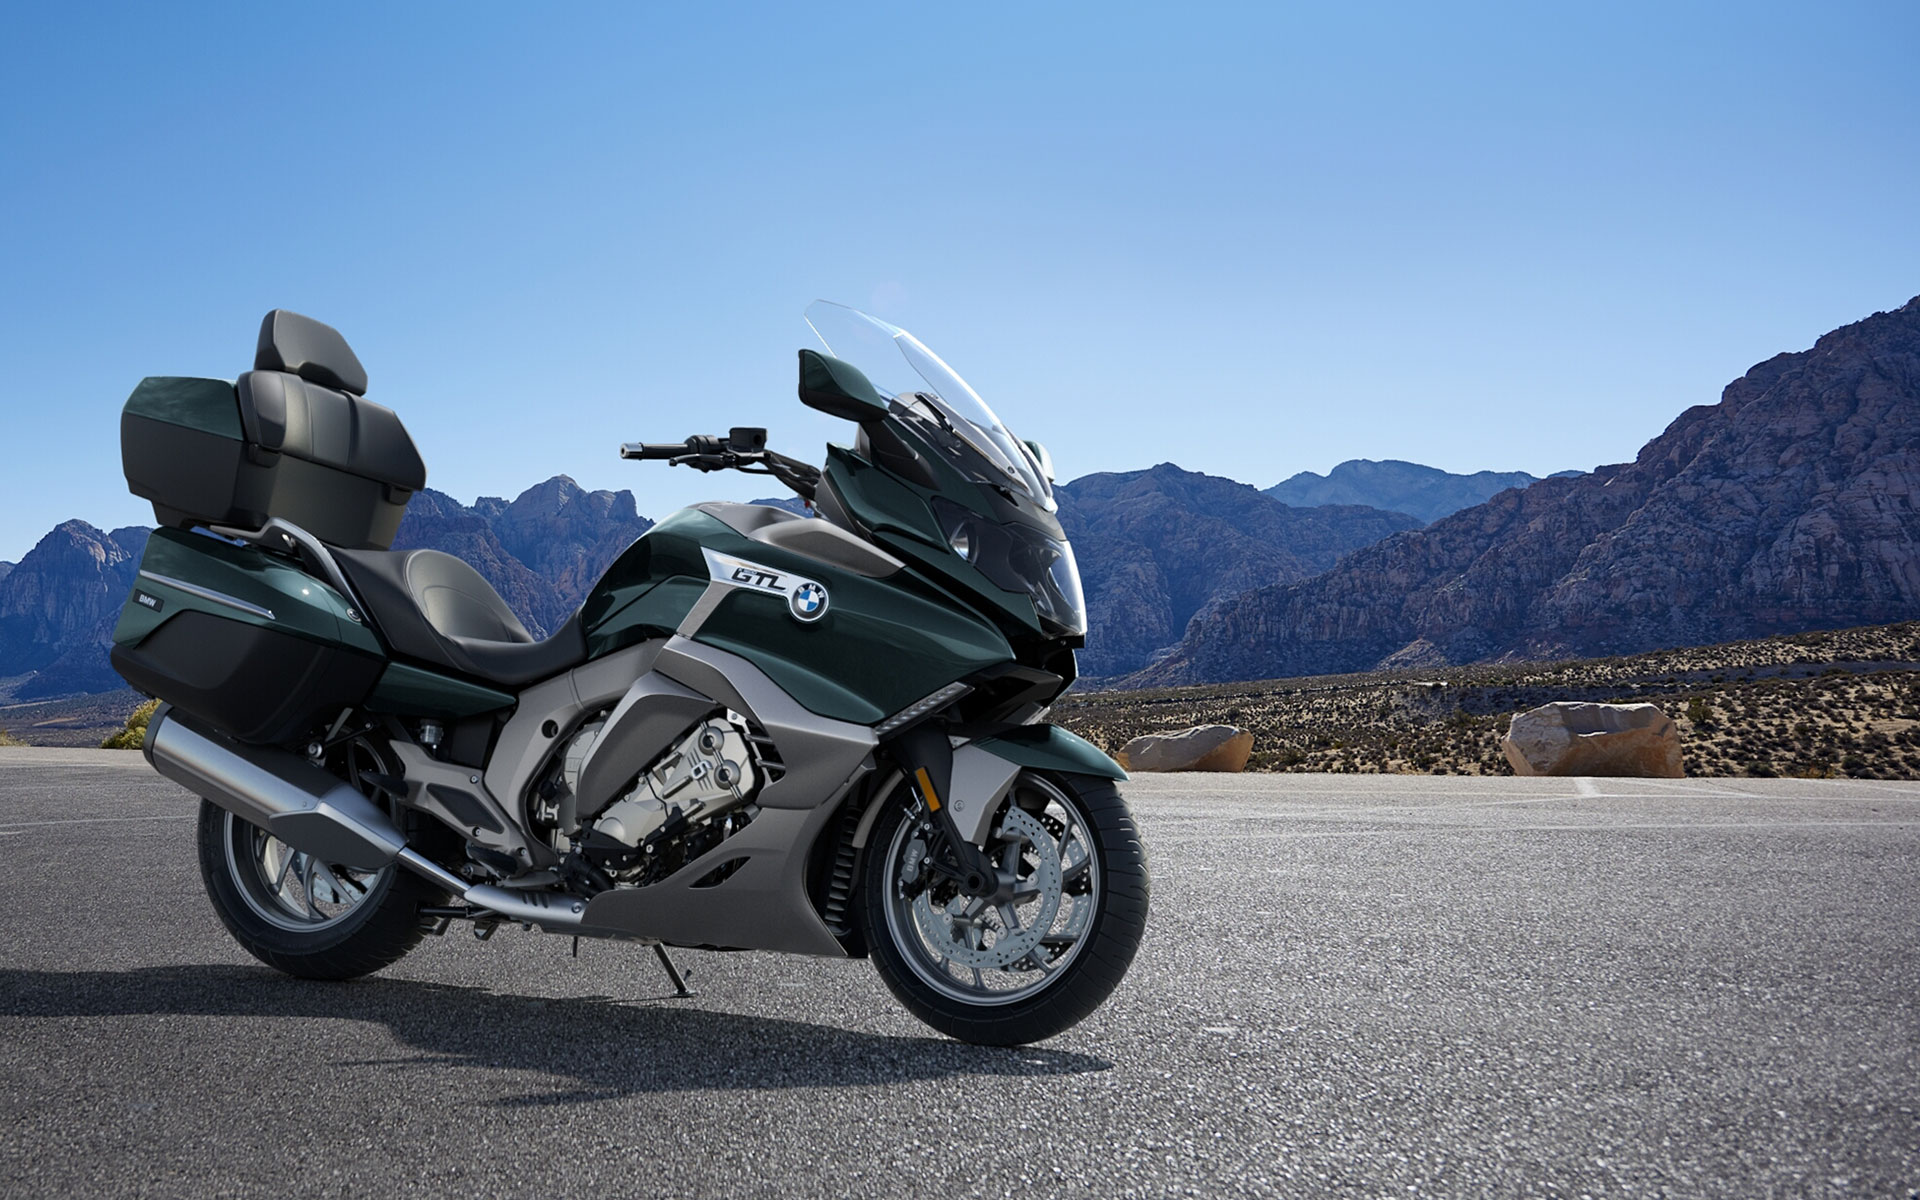 Promotions | BMW Motorcycles of Riverside | Riverside, CA